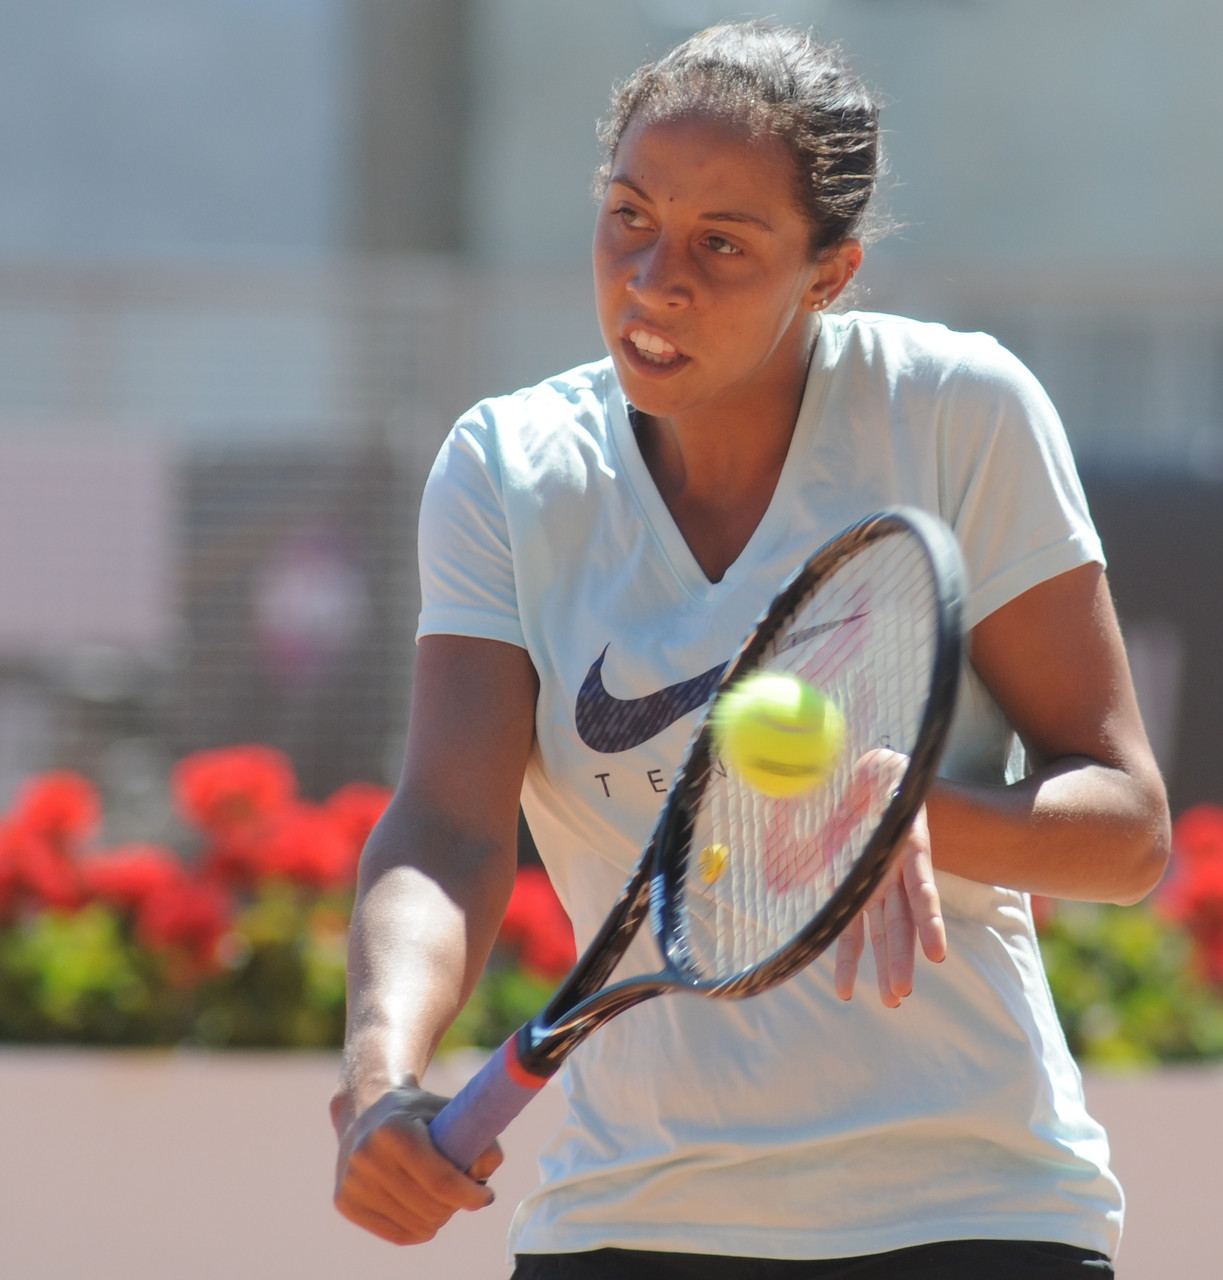 Madison Keys ist die einzig ungesetzte Spielerin im Viertelfinale. Sie bekommt es nun mit... (Foto by: Tatiana from Moscow, Russia - Madison Keys. Licensed under CC BY-SA 2.0 via Wikimedia Commons)